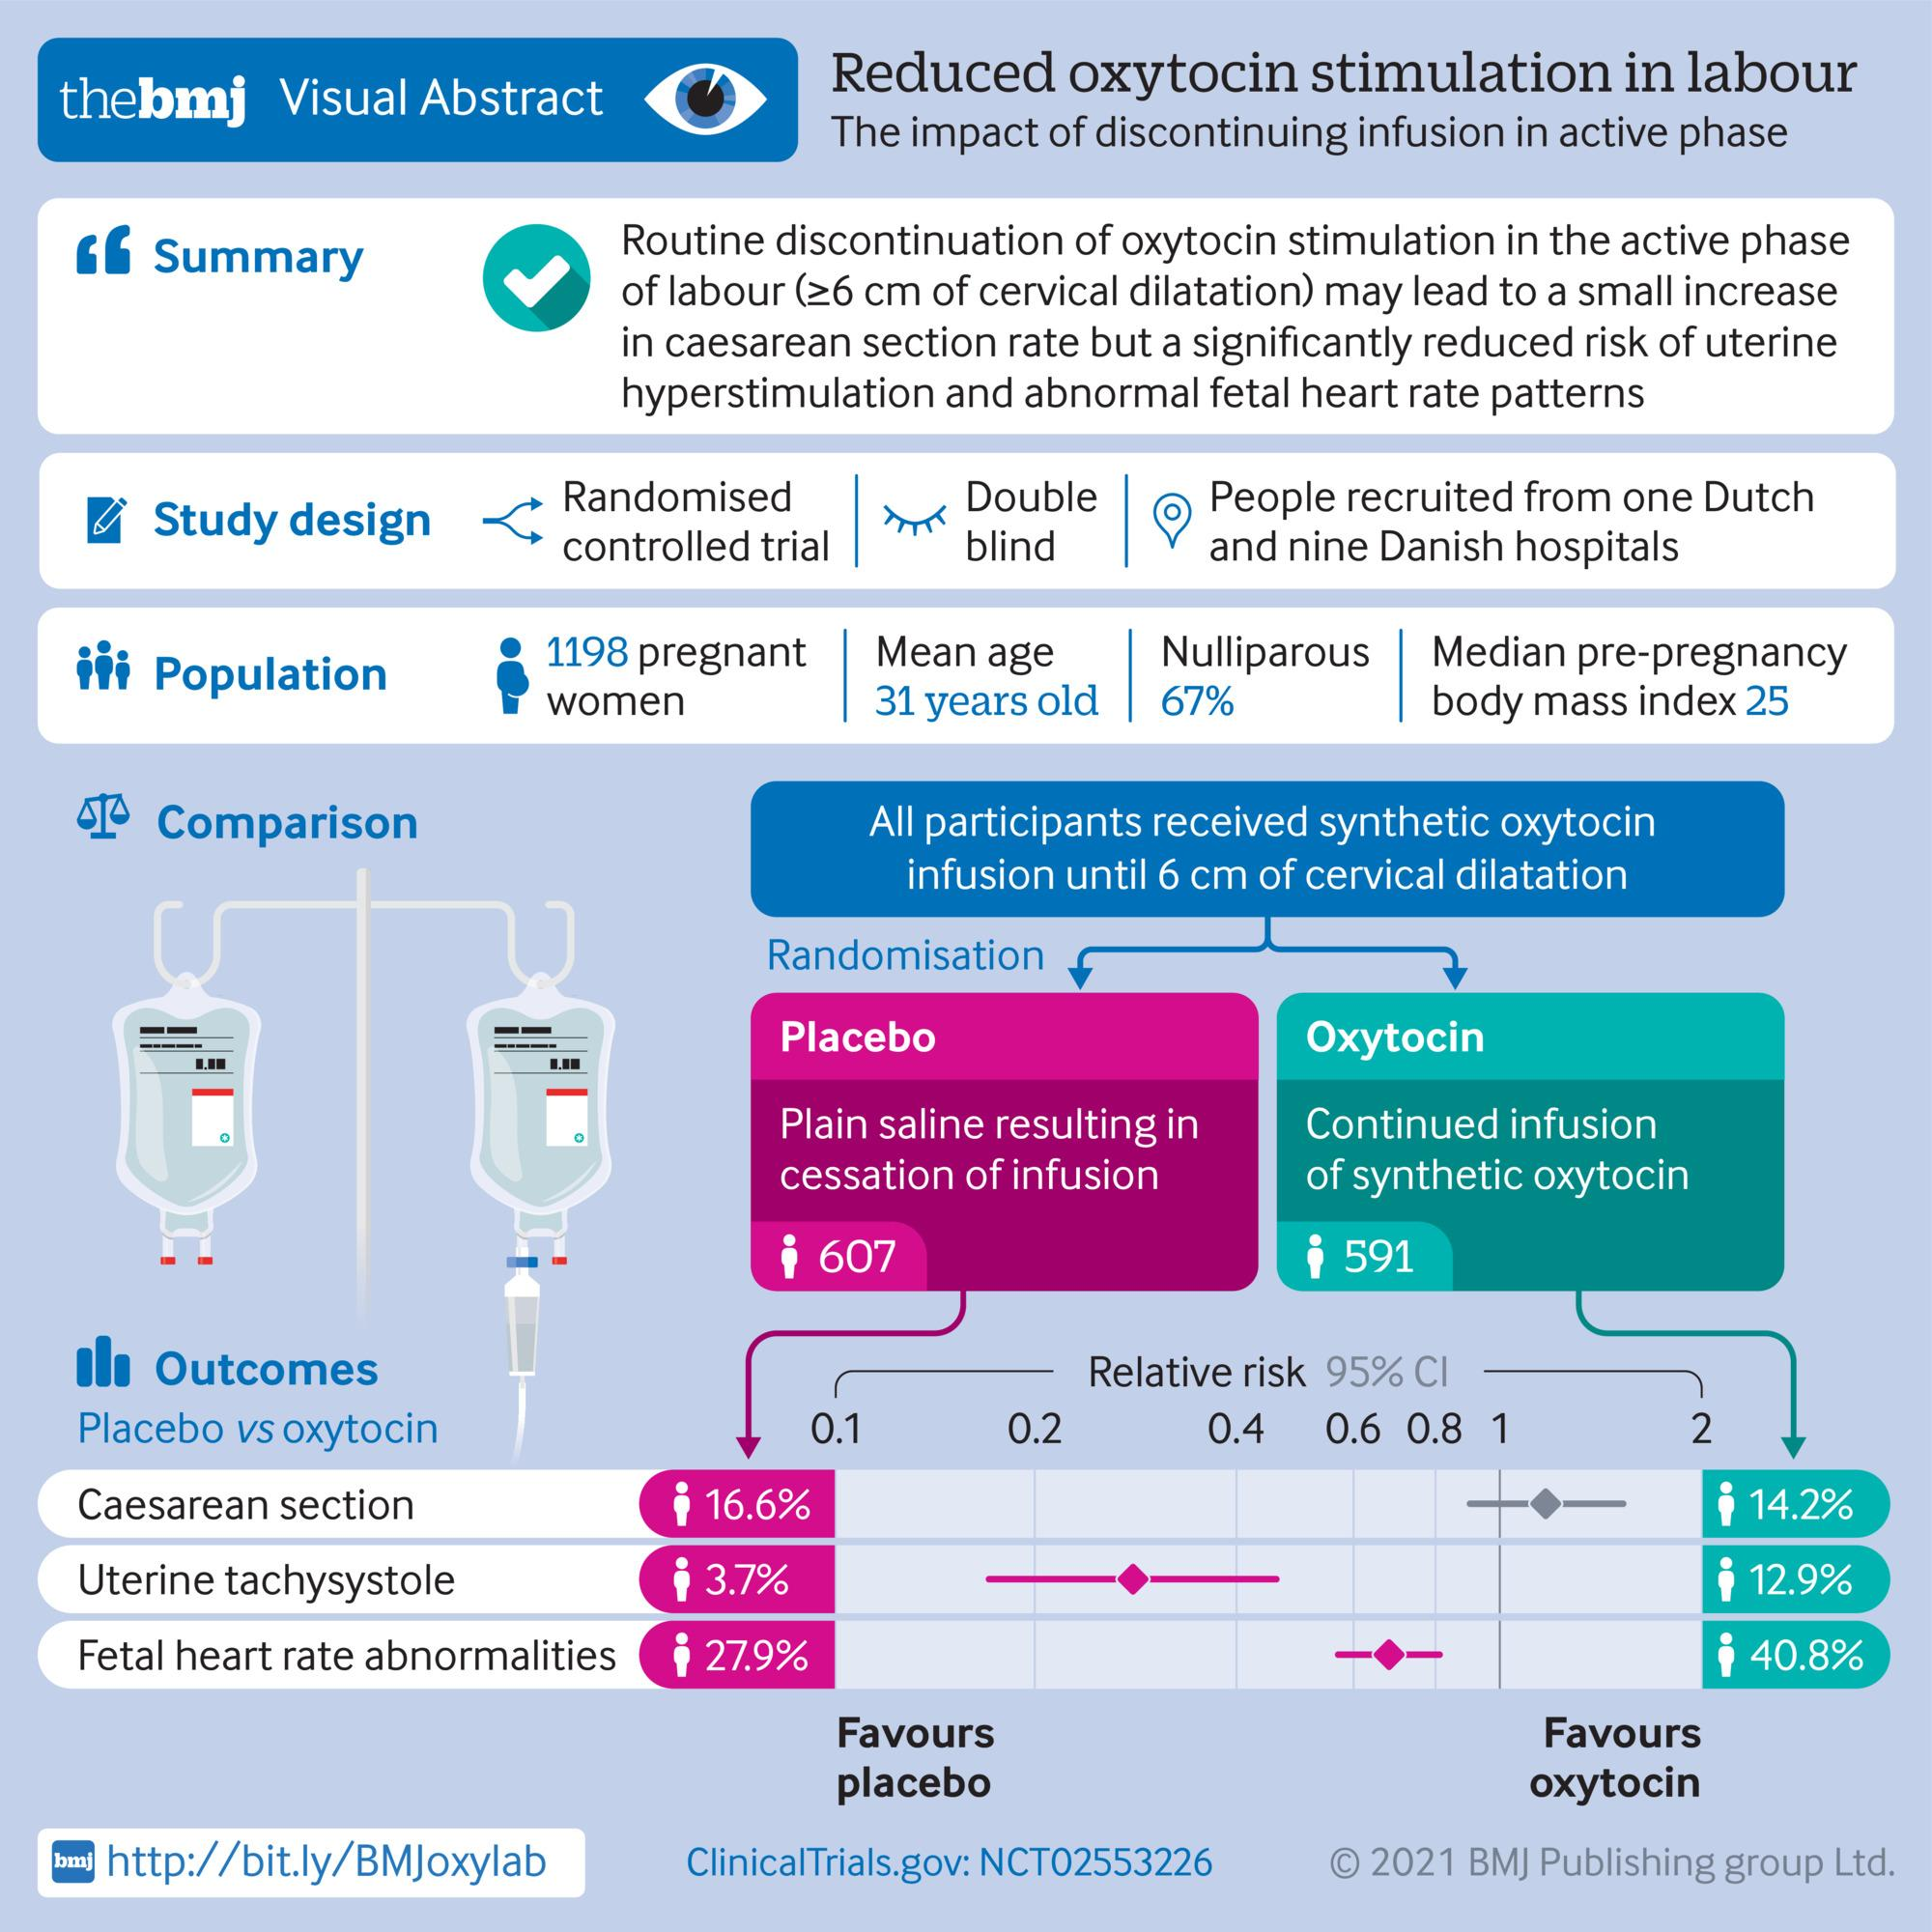 Reduced oxytocin stimulation in labour: The impact of discontinuing infusion in active phase